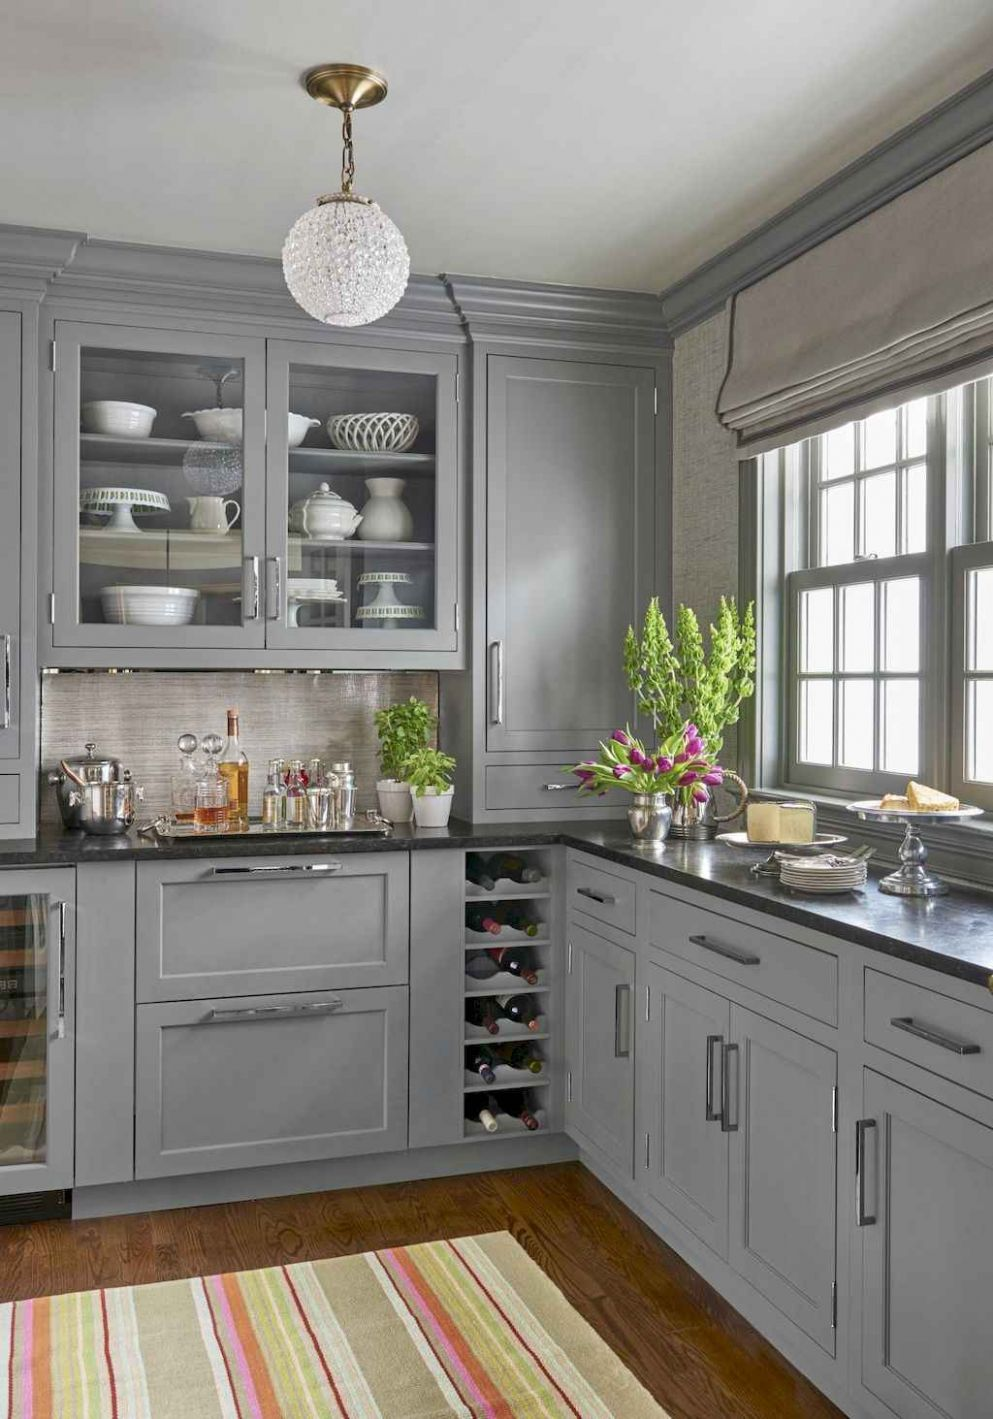 9 Gray Kitchen Cabinet Makeover Design Ideas - DoMakeover.com